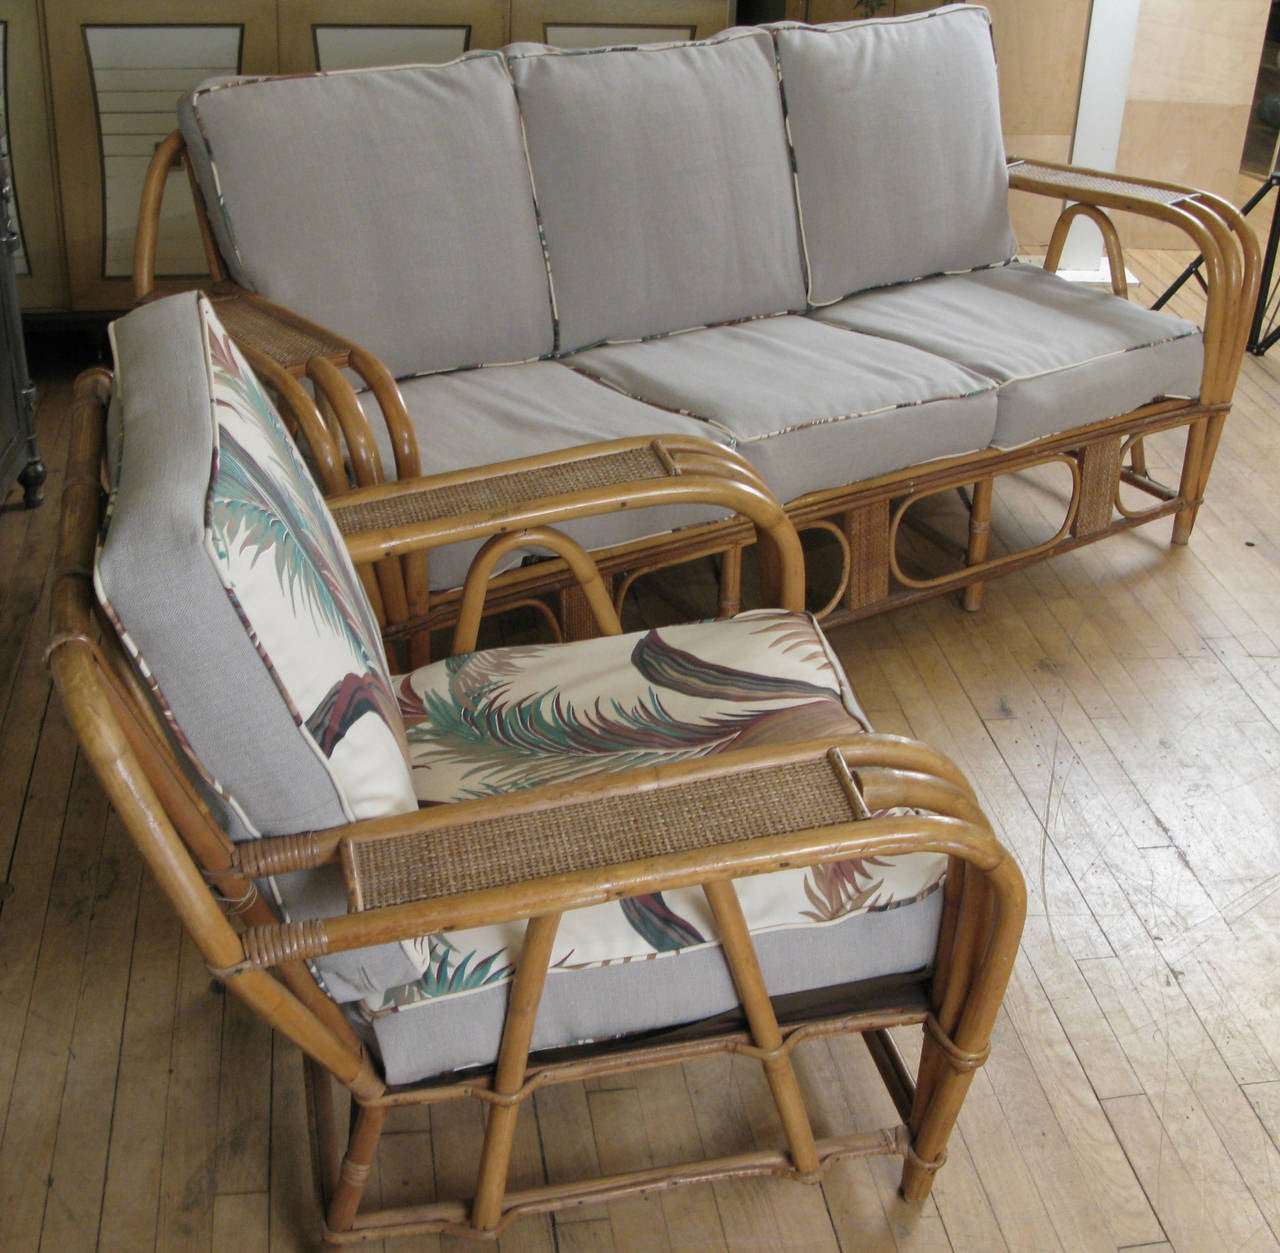 American Vintage 1940s Rattan Sofa And Chair With Reversible Cushions For